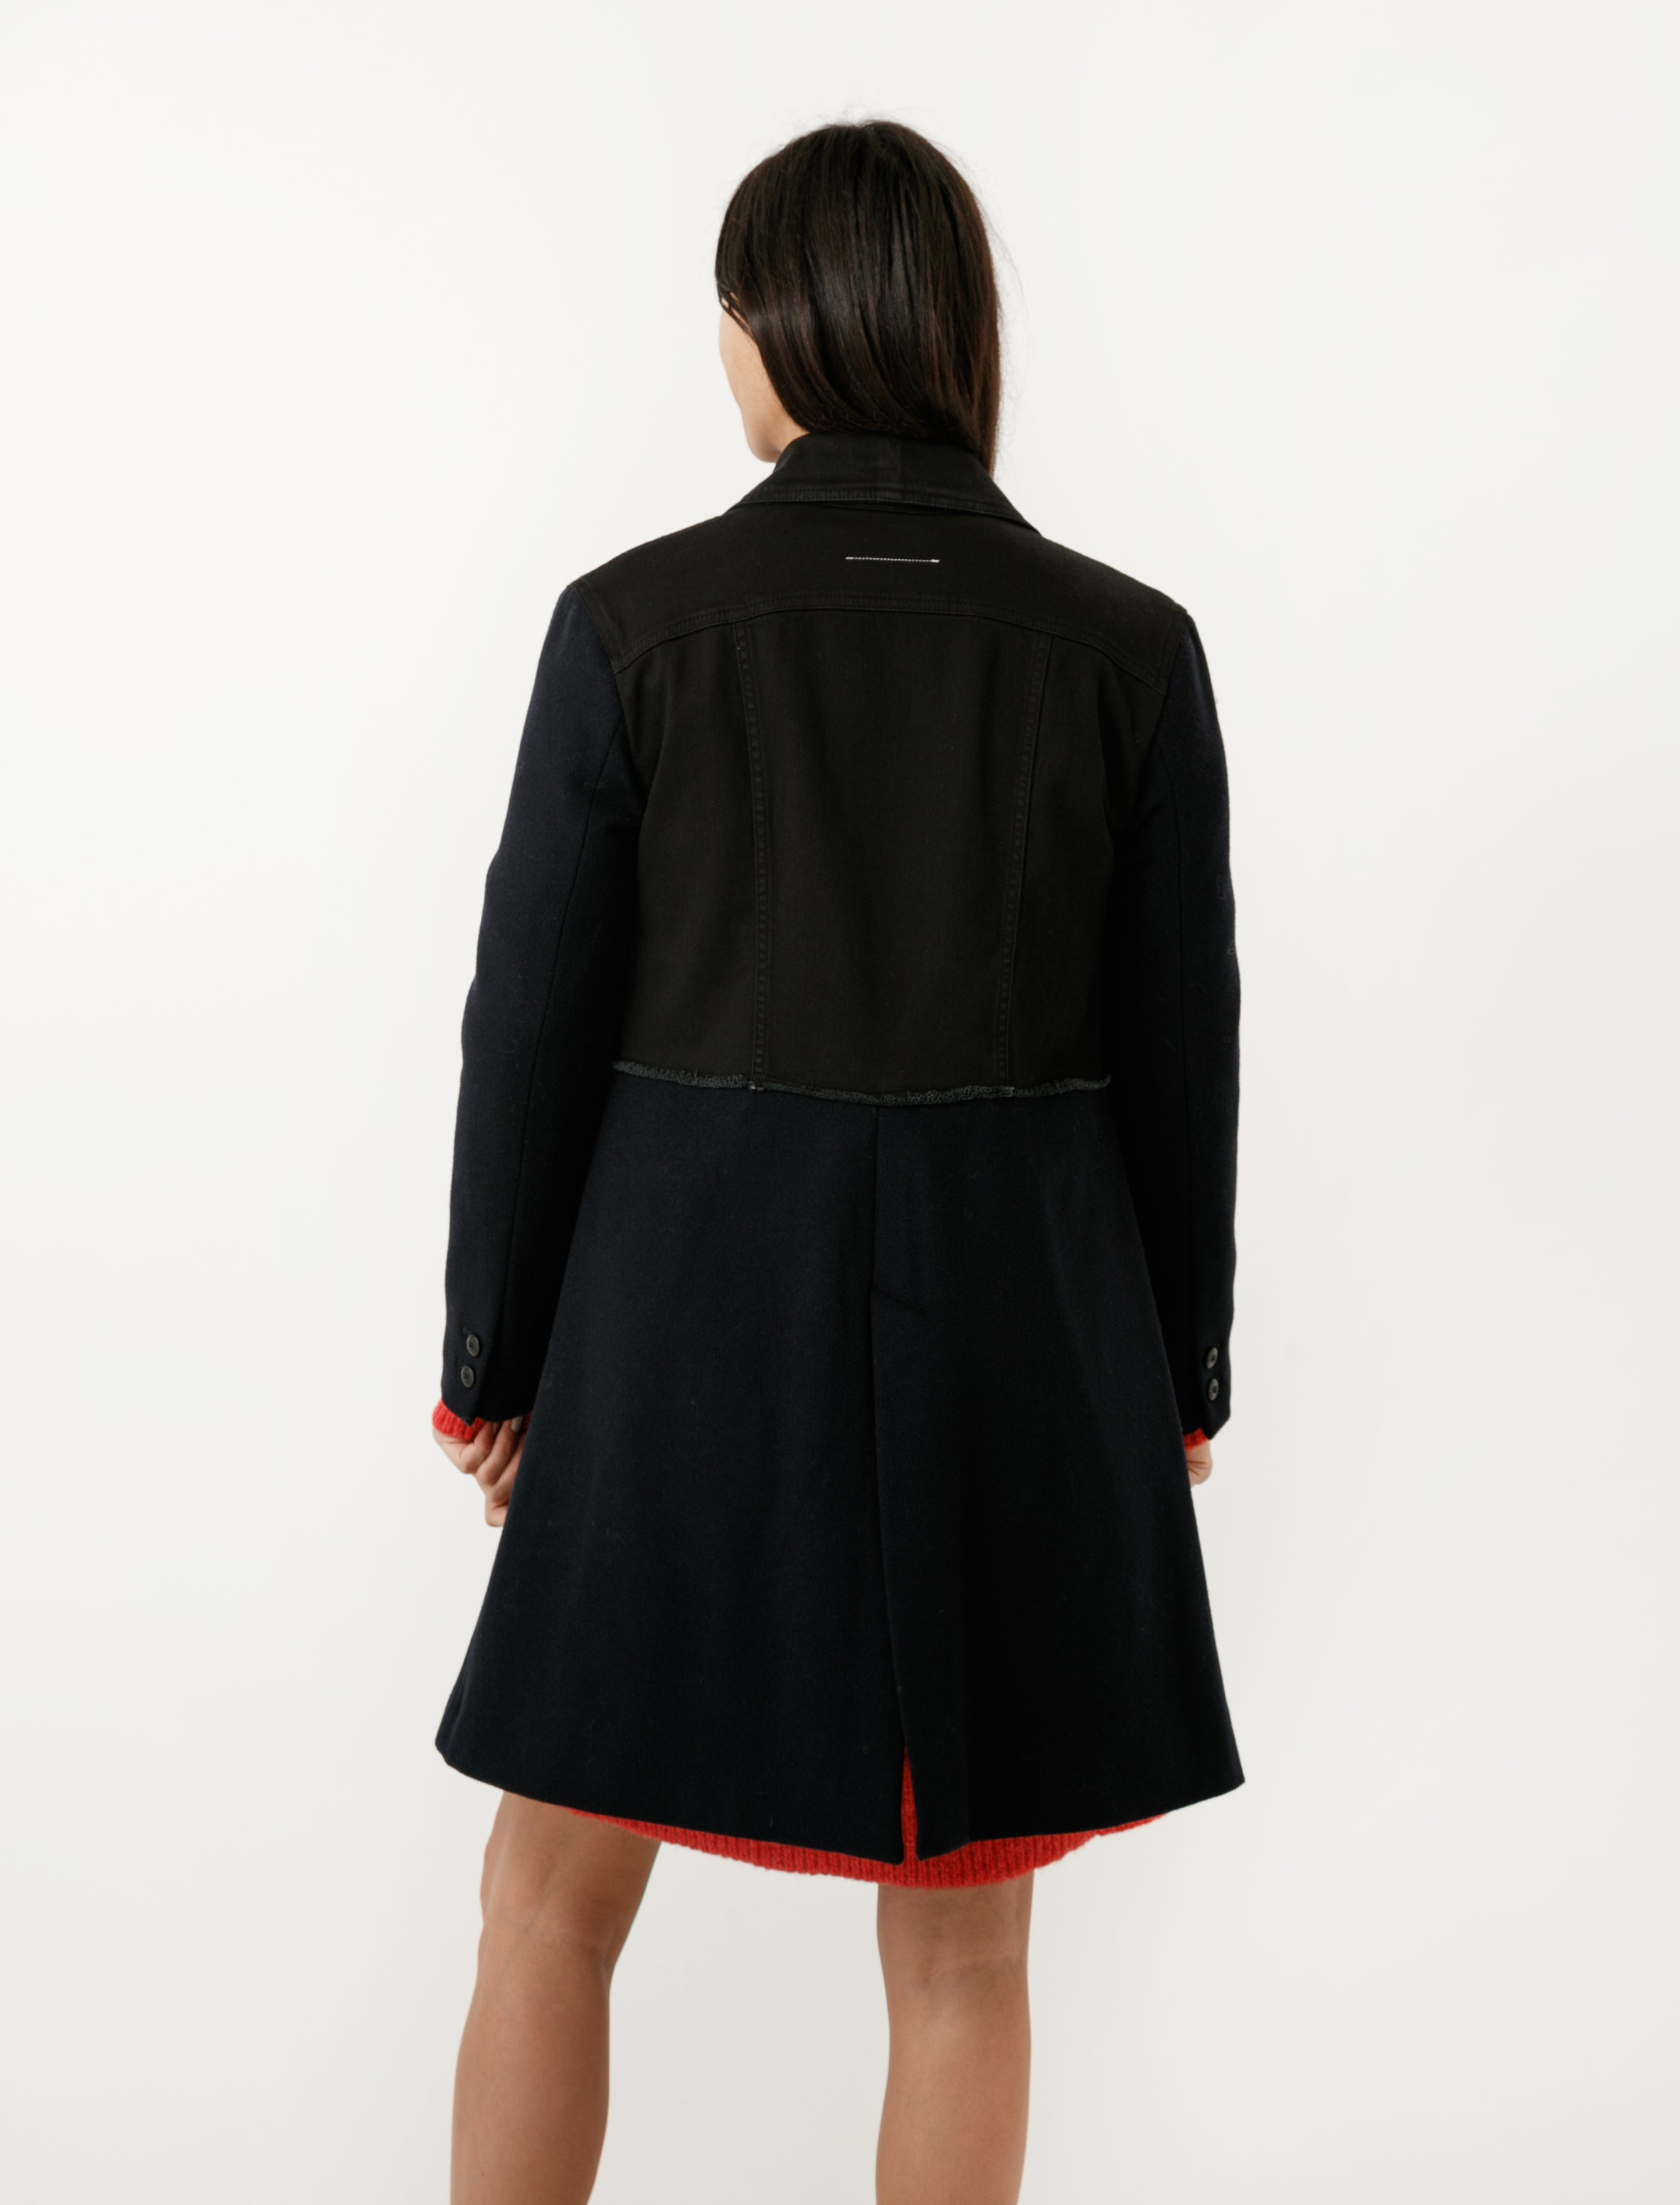 MM6 by Maison Margiela Collage Denim/Wool Coat